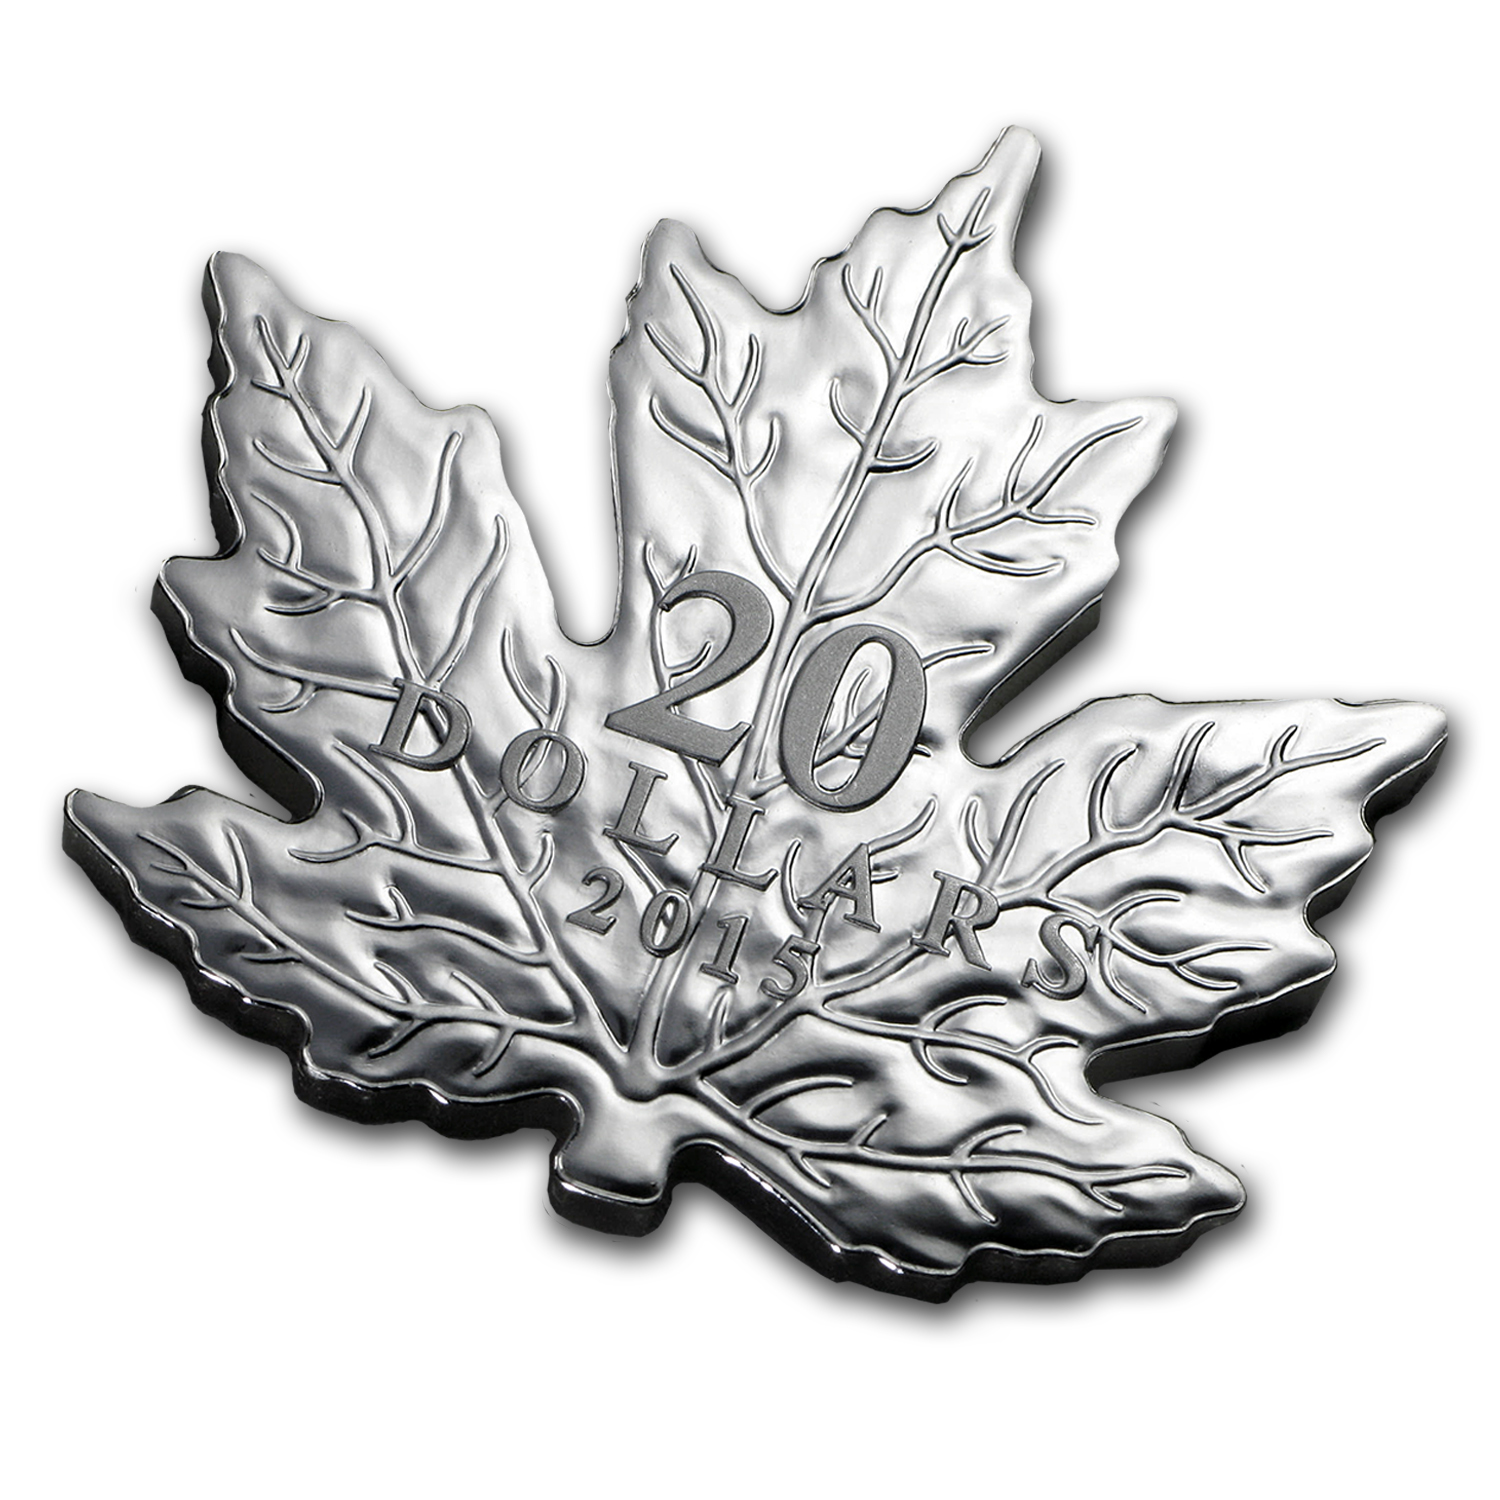 2015 Canada 1 oz Silver $20 Proof Maple Leaf Shaped Coin